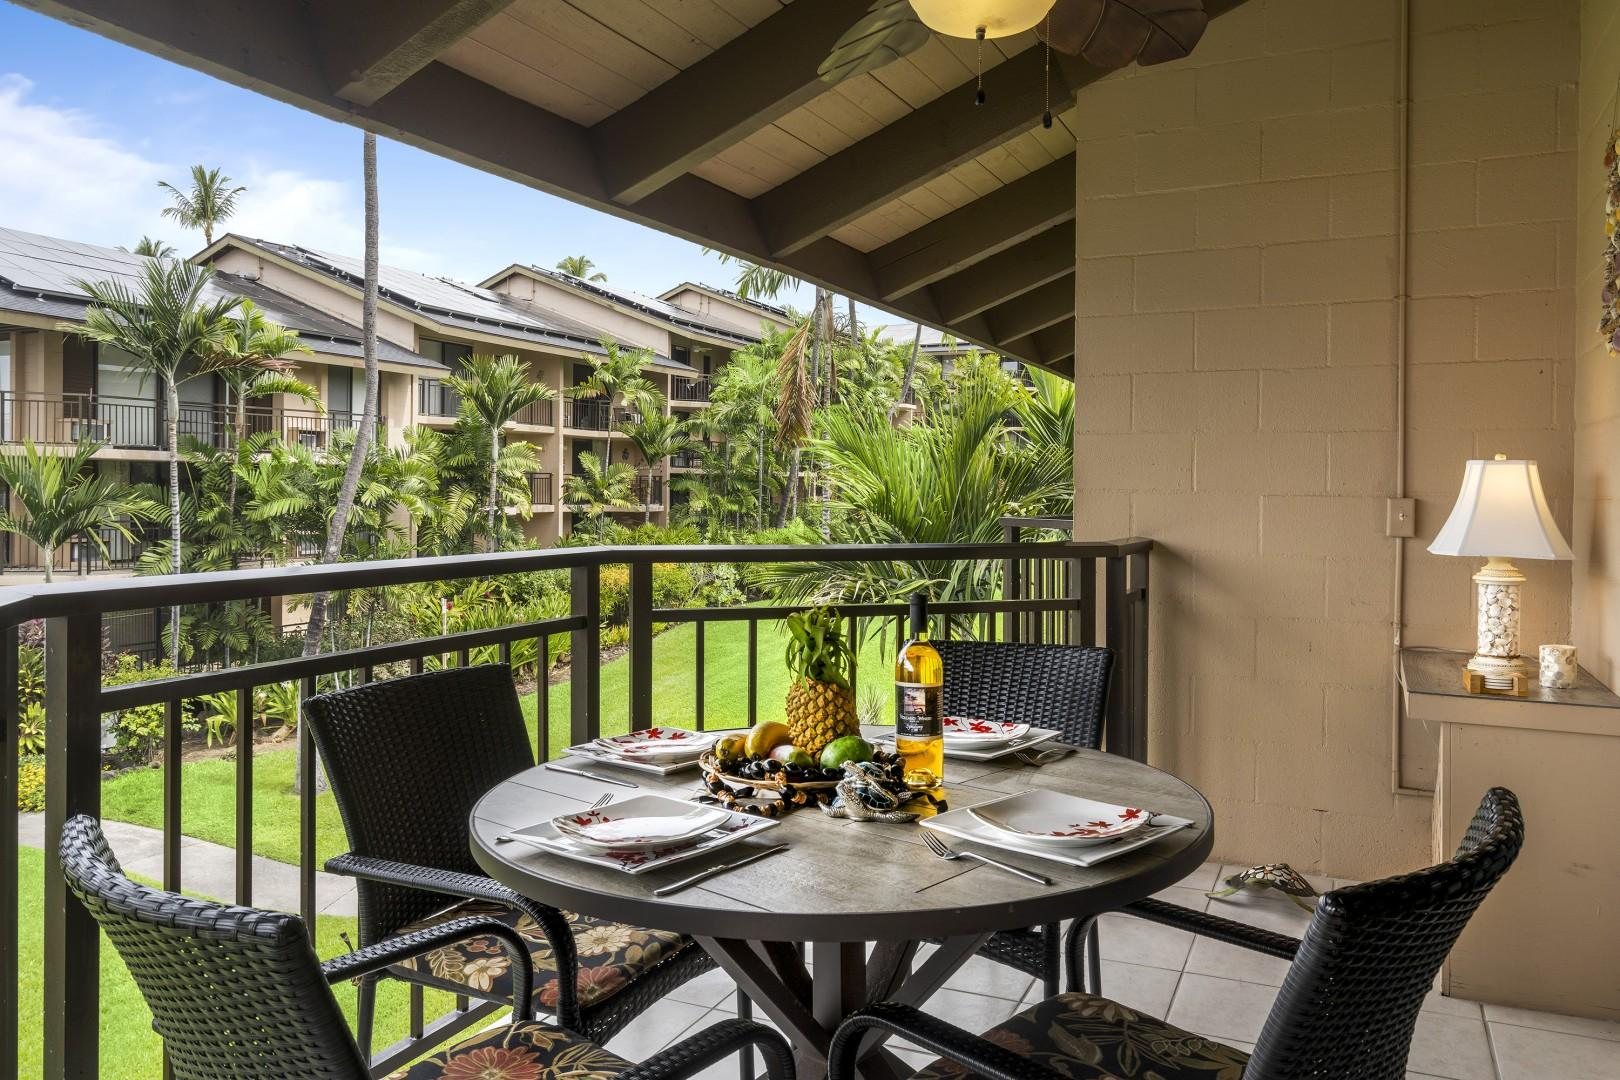 Covered Lanai offers a great place to dine even in the rain!